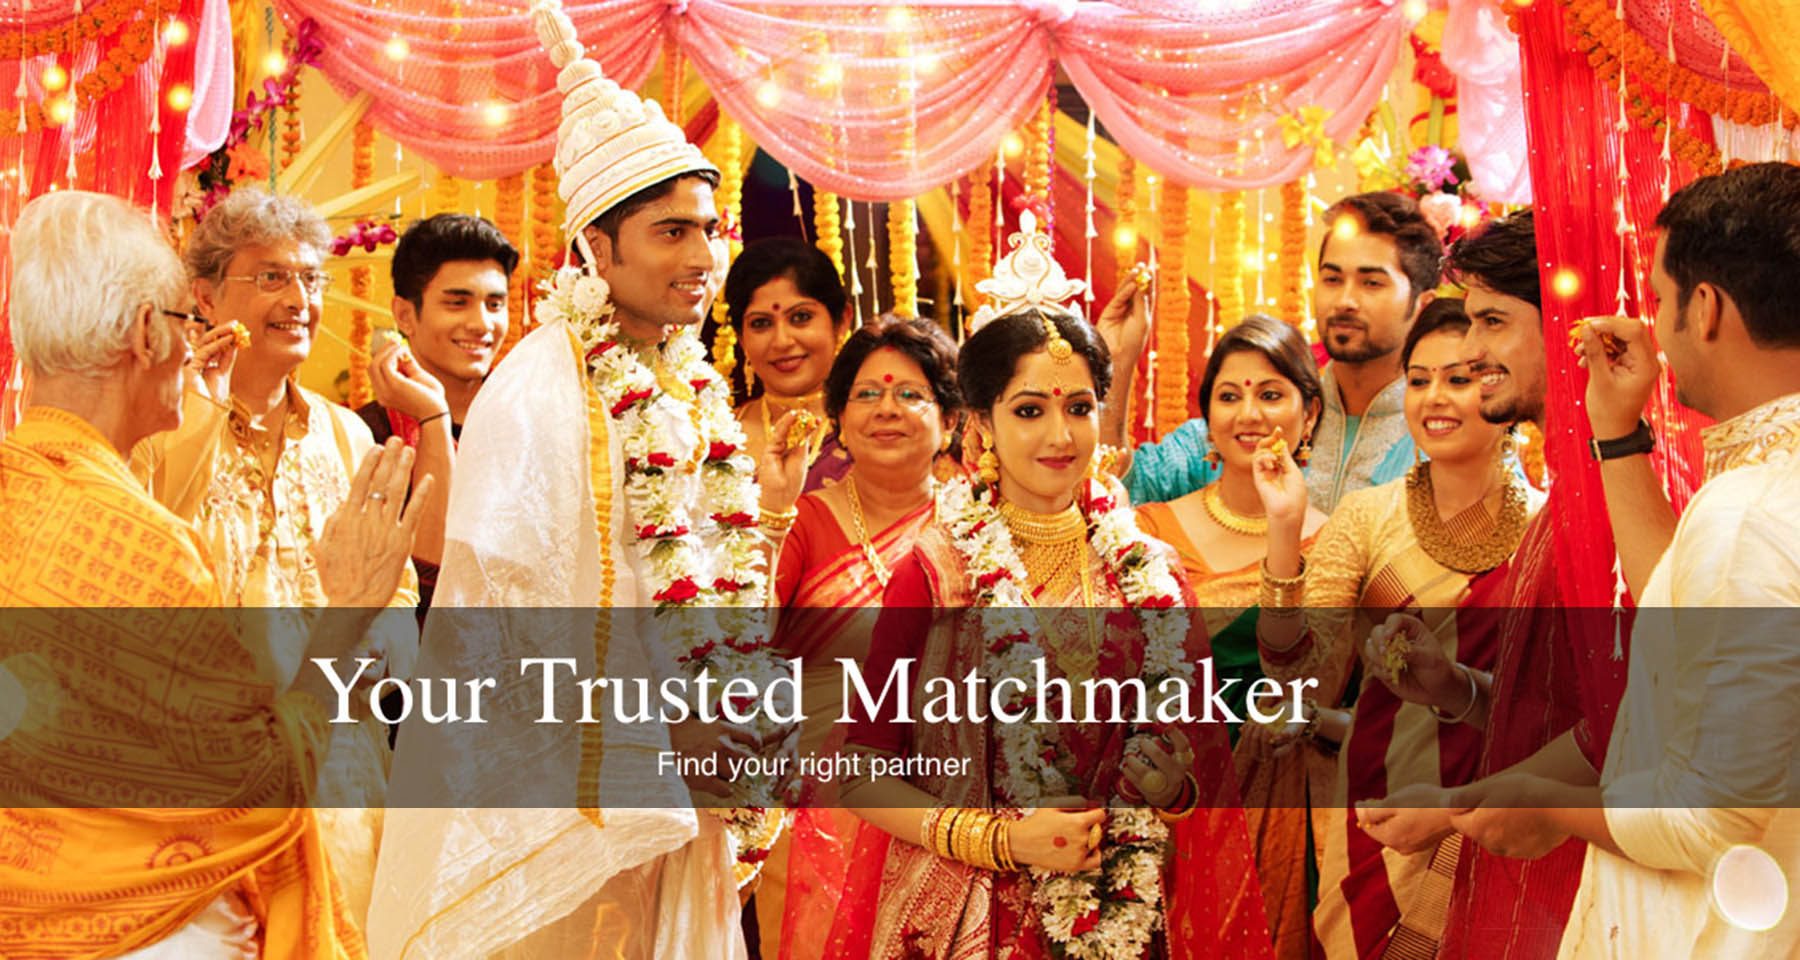 INMA: ABP Group's online matchmaking portal sets trend with tougher